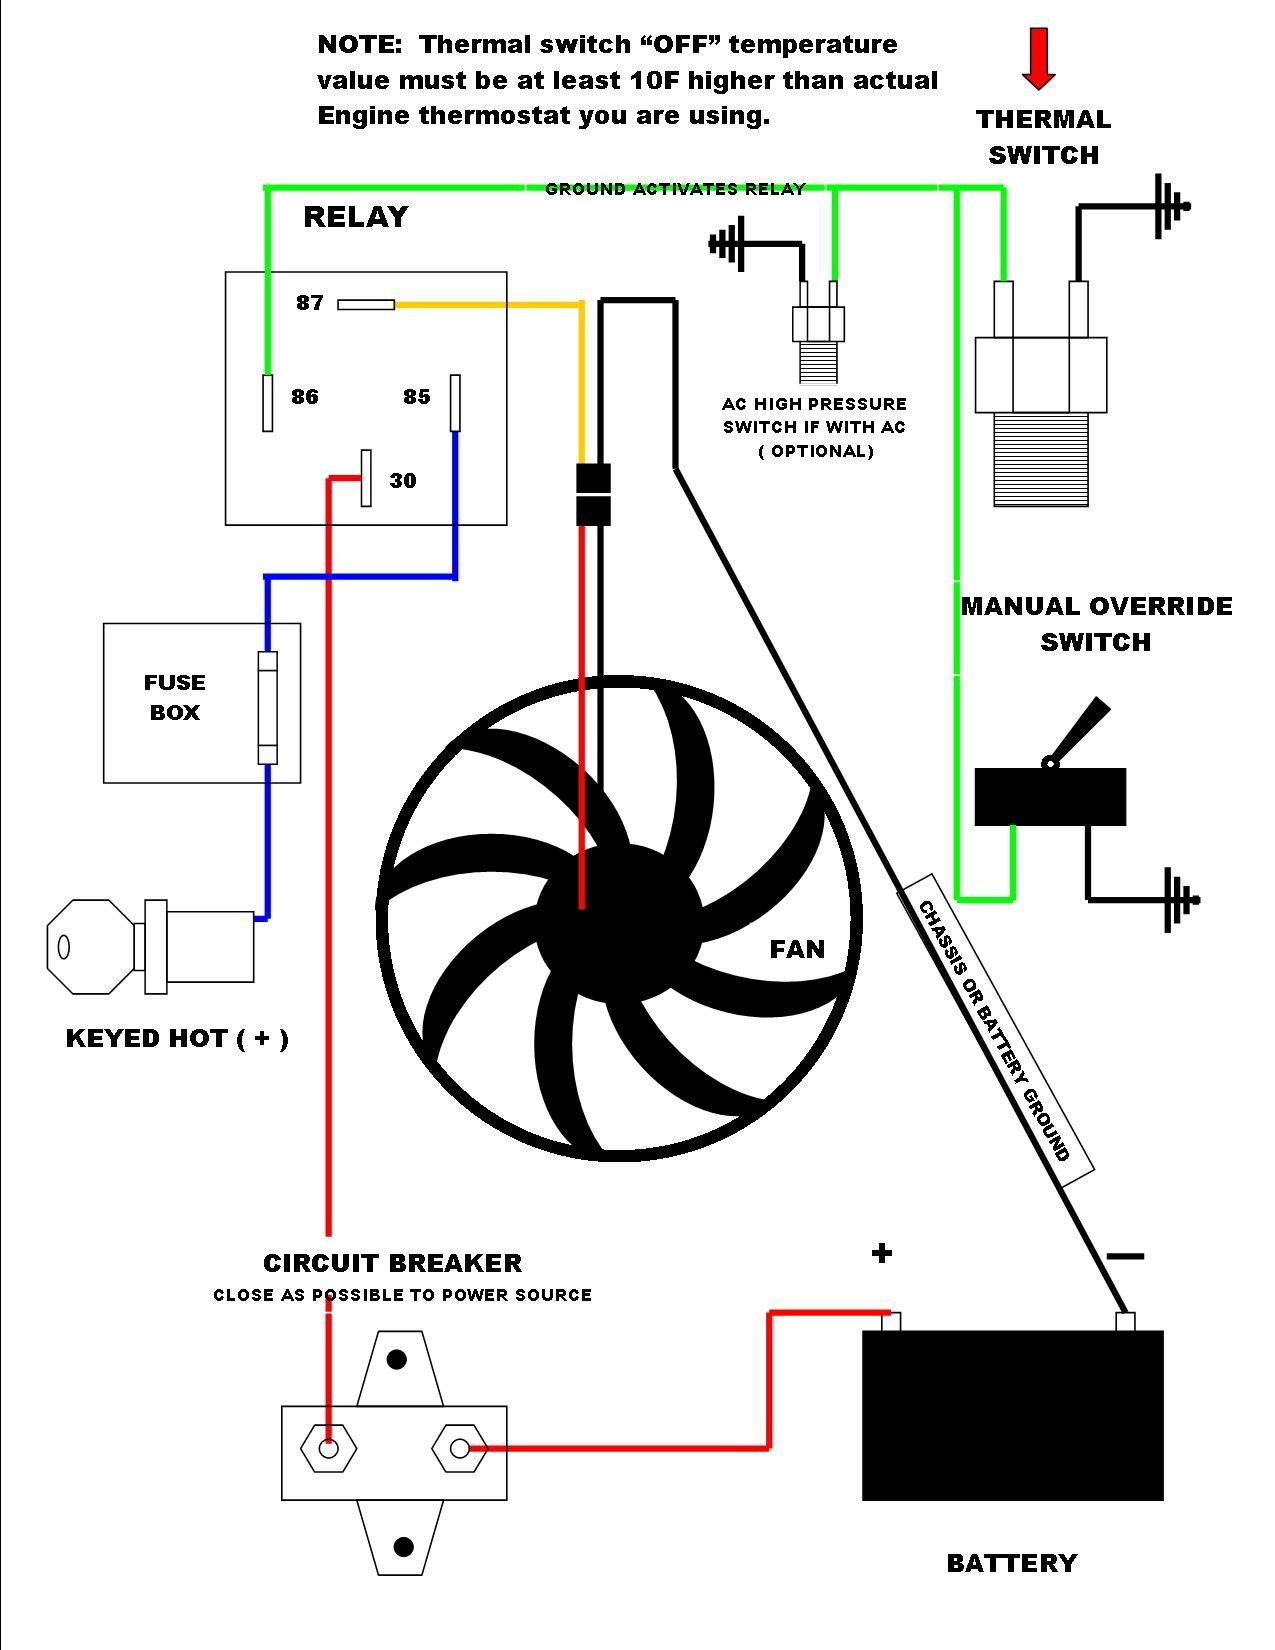 Electric Radiator Fan Wiring Diagram Jeeppass FULL HD Version Diagram  Jeeppass - TARODIAGRAM.EMBALLAGES-SOUS-VIDE.FREMBALLAGES-SOUS-VIDE.FR